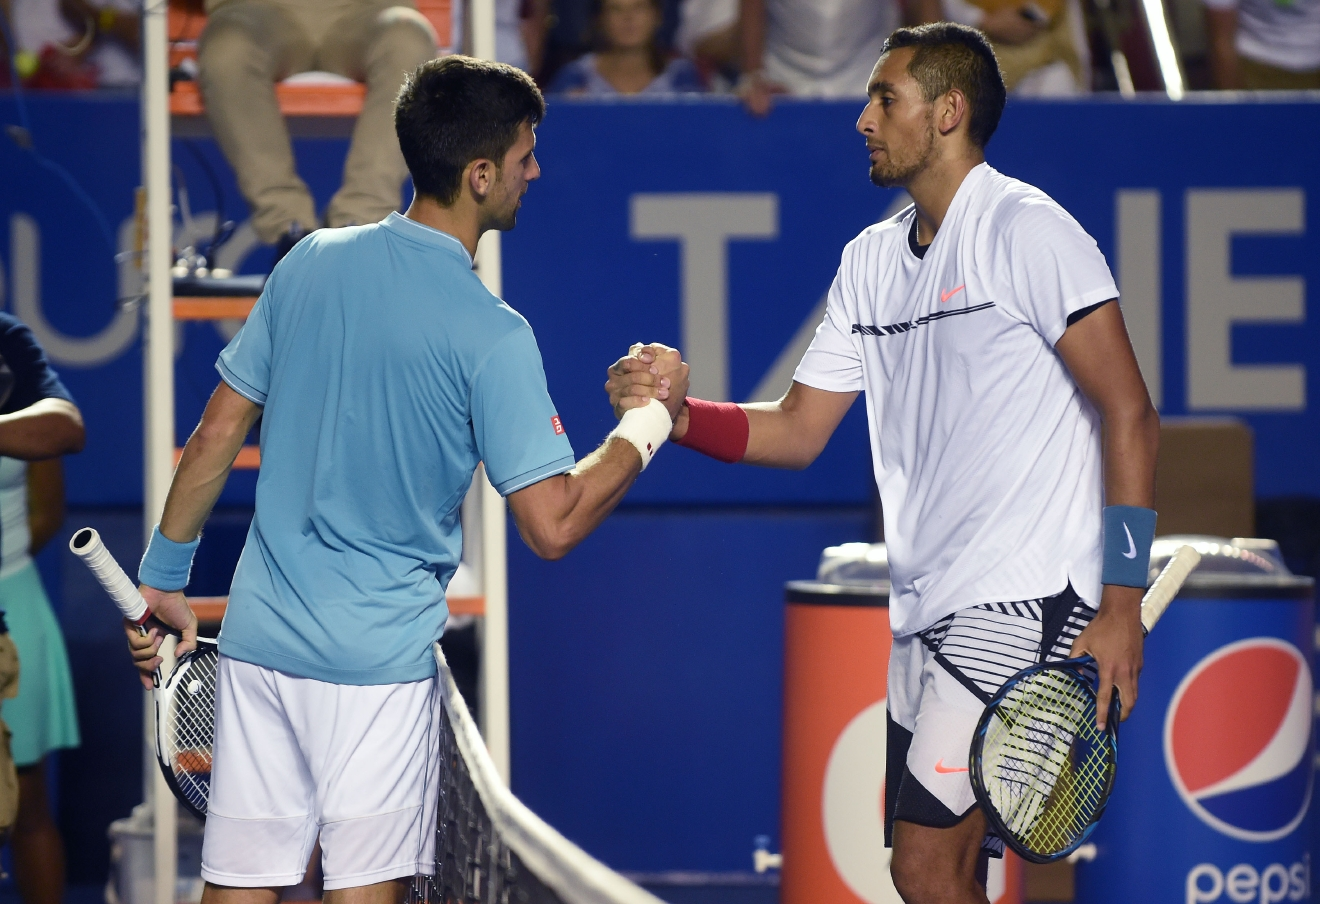 Australia's Nick Kyrgios (R) speaks to Serbia's Novak Djokovic (L) after winning his match during the fourth day of the Mexican Tennis Open, in Acapulco, Guerrero State, Mexico, on March 3, 2017. / AFP PHOTO / ALFREDO ESTRELLA        (Photo credit should read ALFREDO ESTRELLA/AFP/Getty Images)